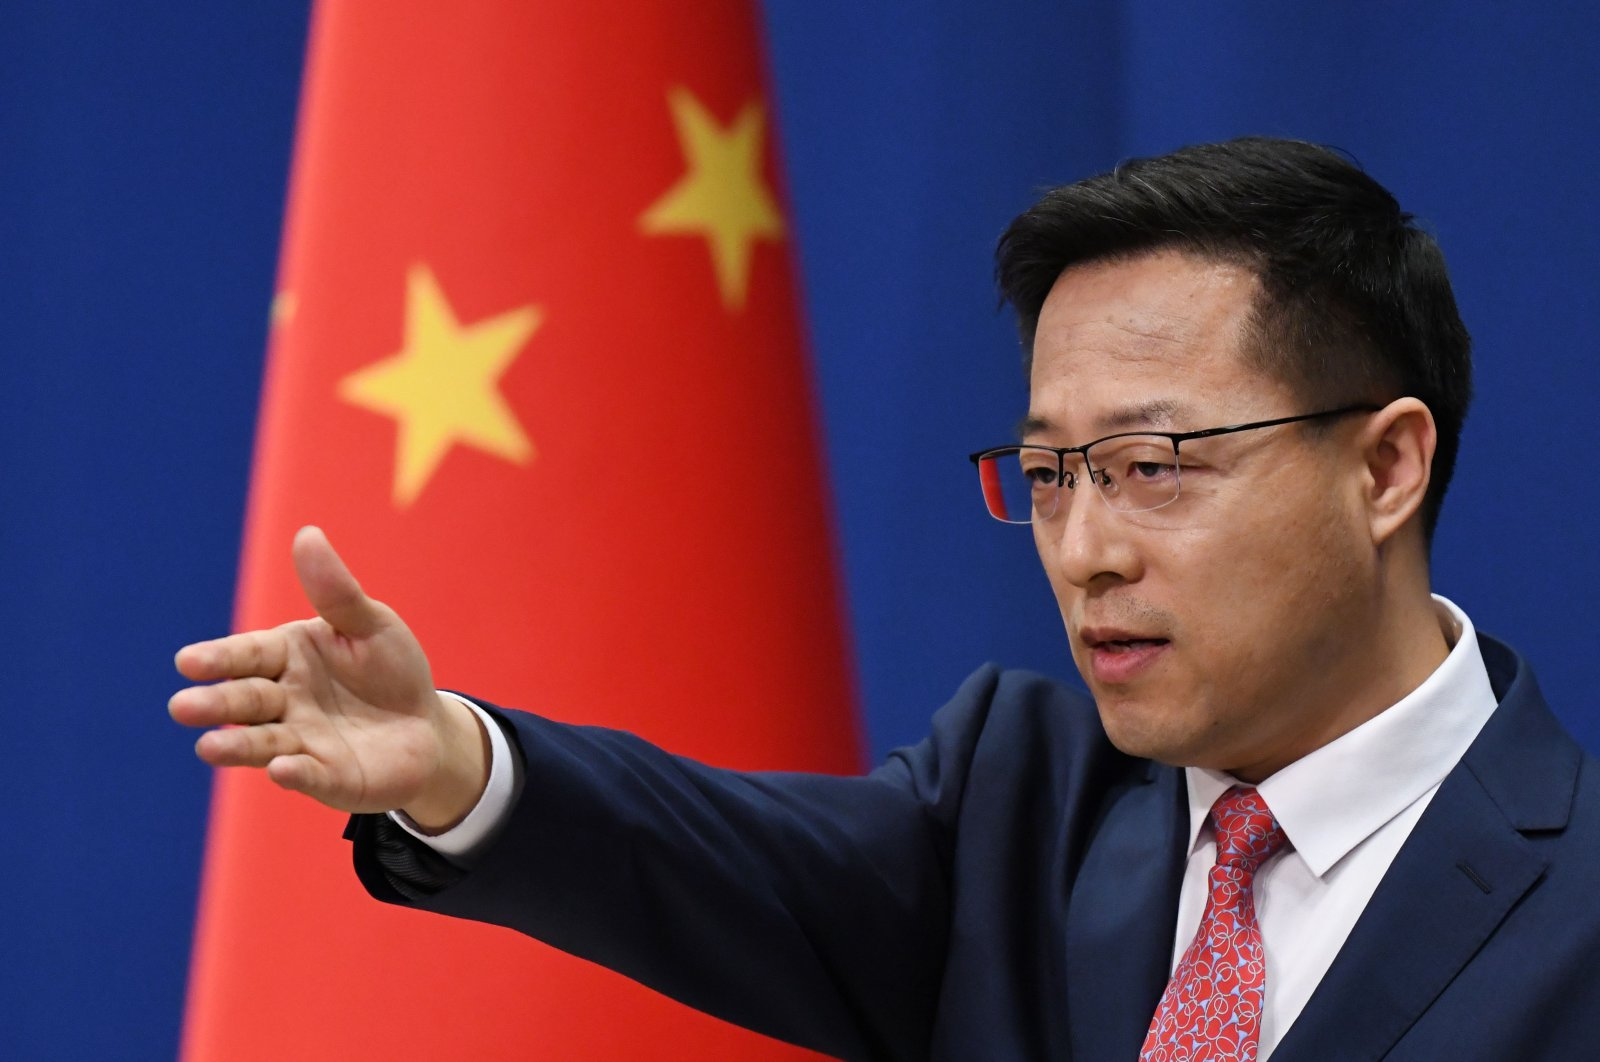 Chinese Foreign Ministry spokesman Zhao Lijian takes a question at a daily media briefing, Beijing, April 8, 2020. (AFP Photo)